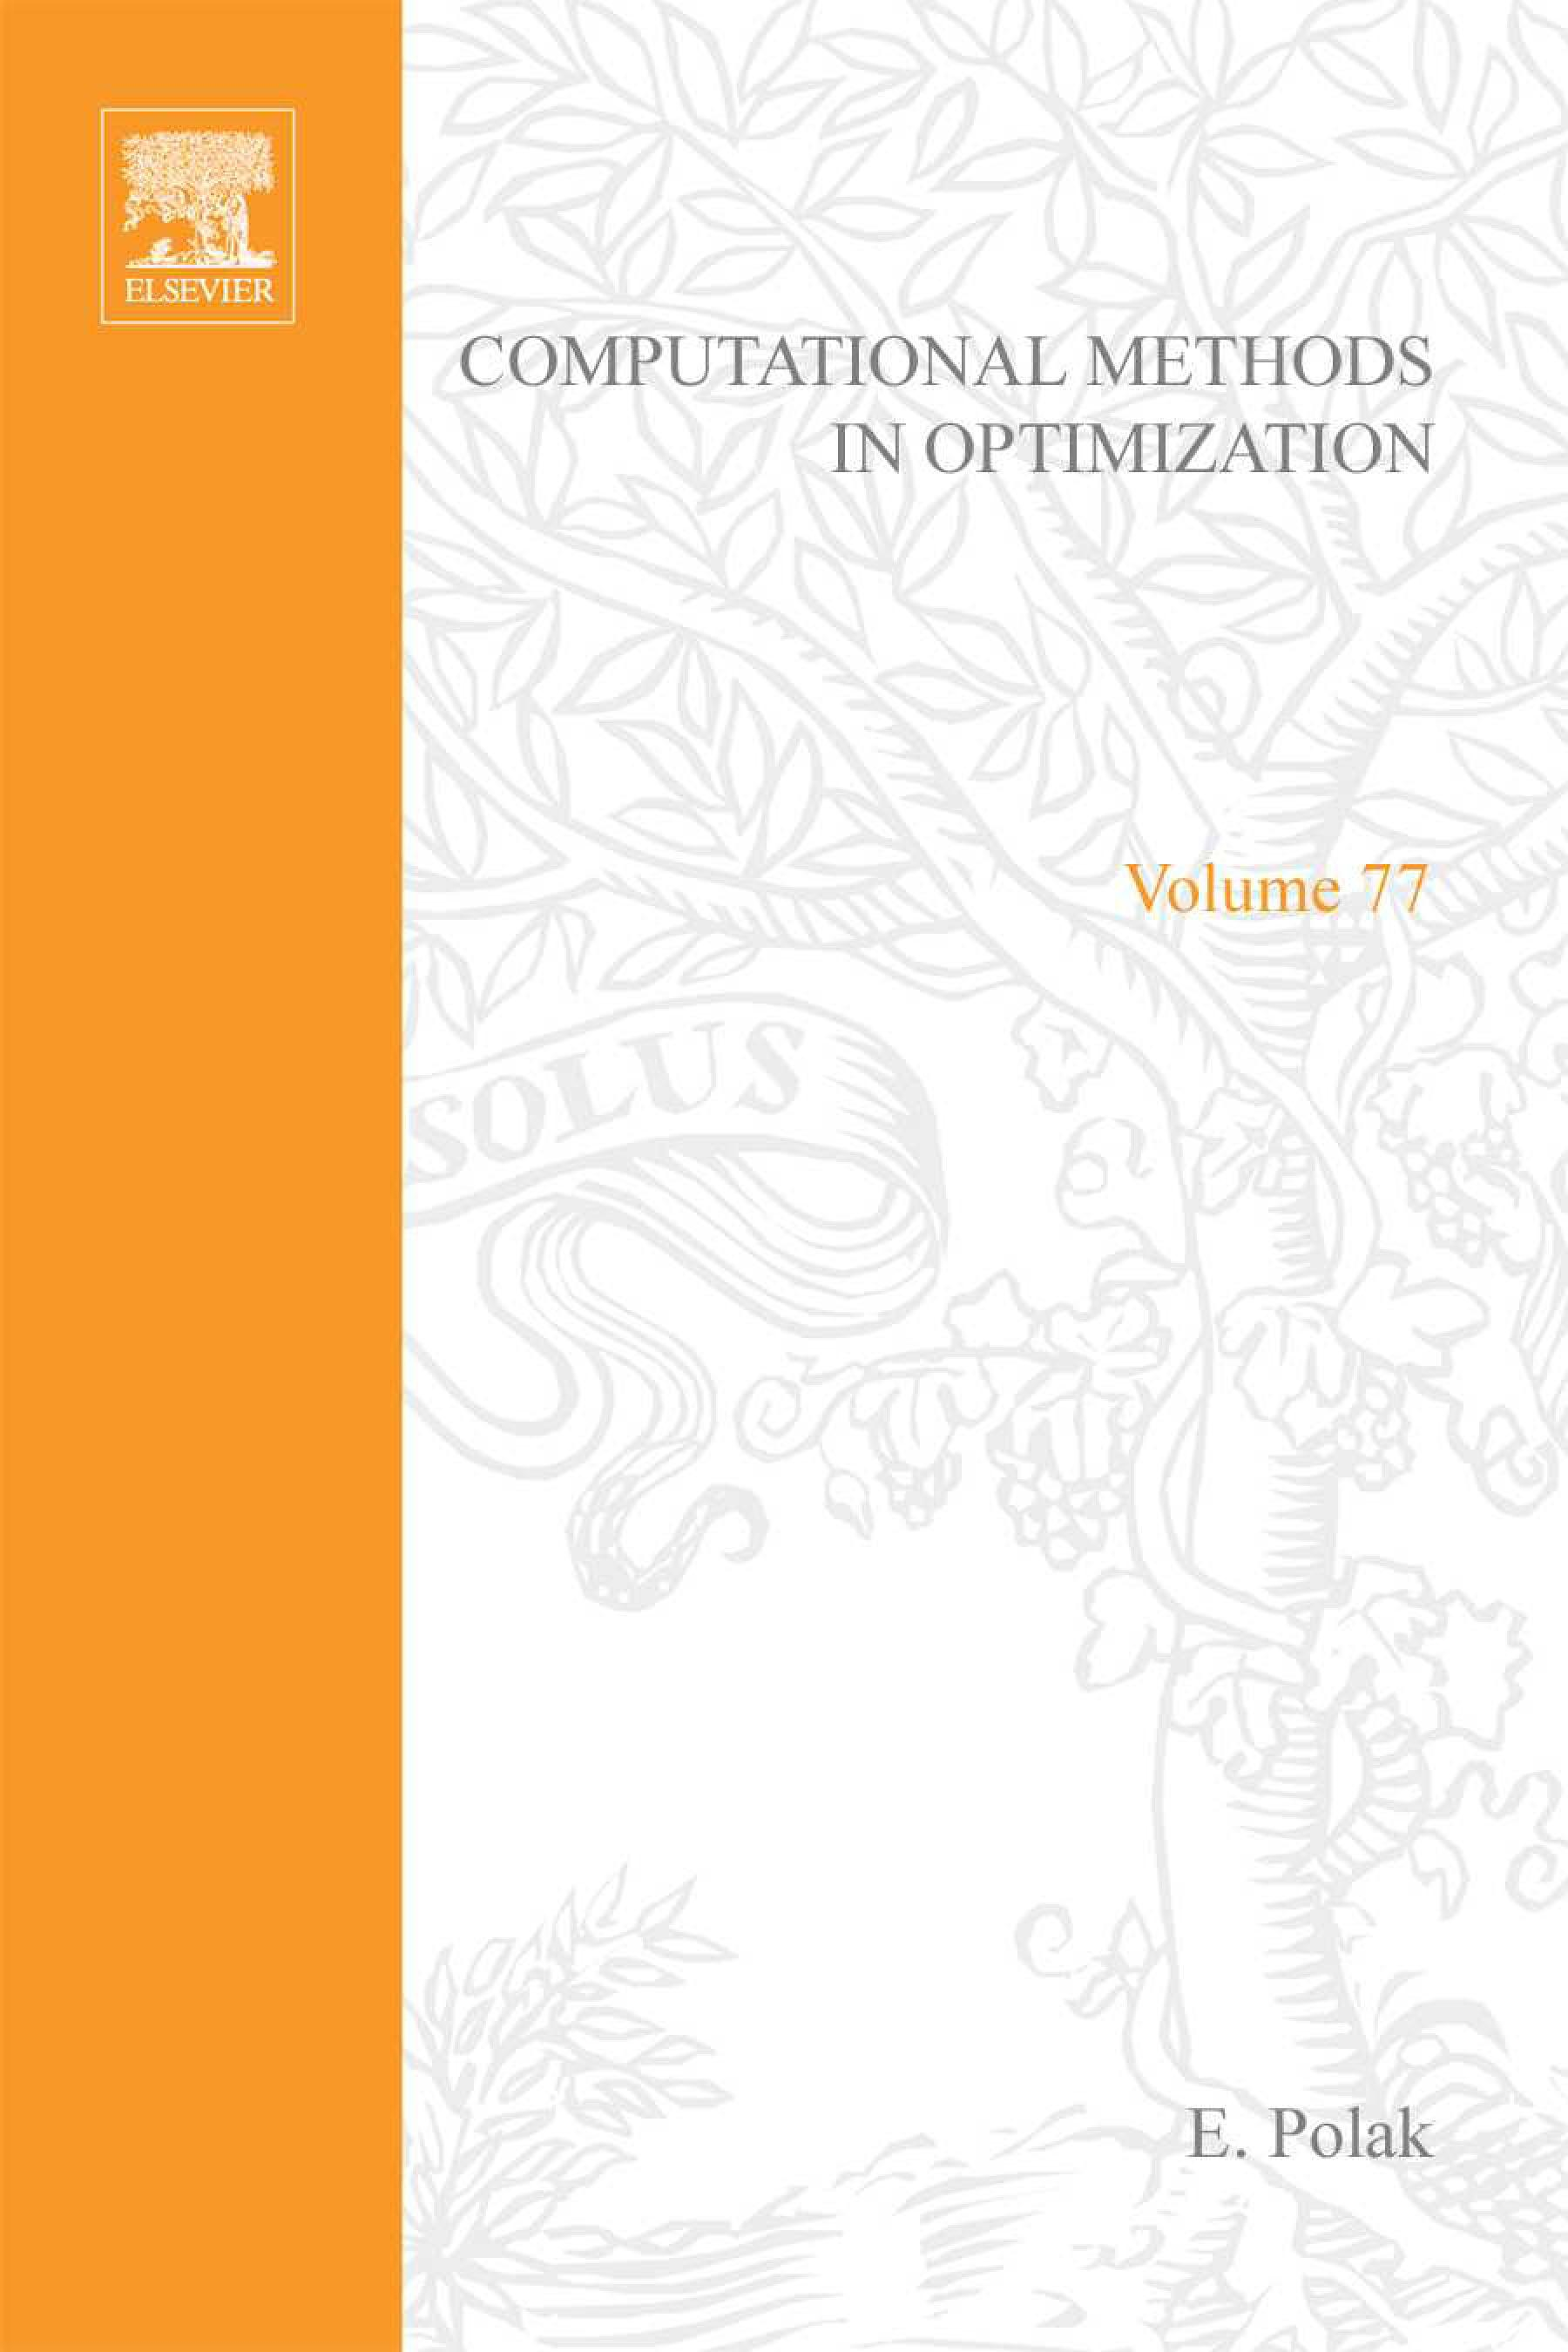 Computational Methods in Optimization: A Unified Approach